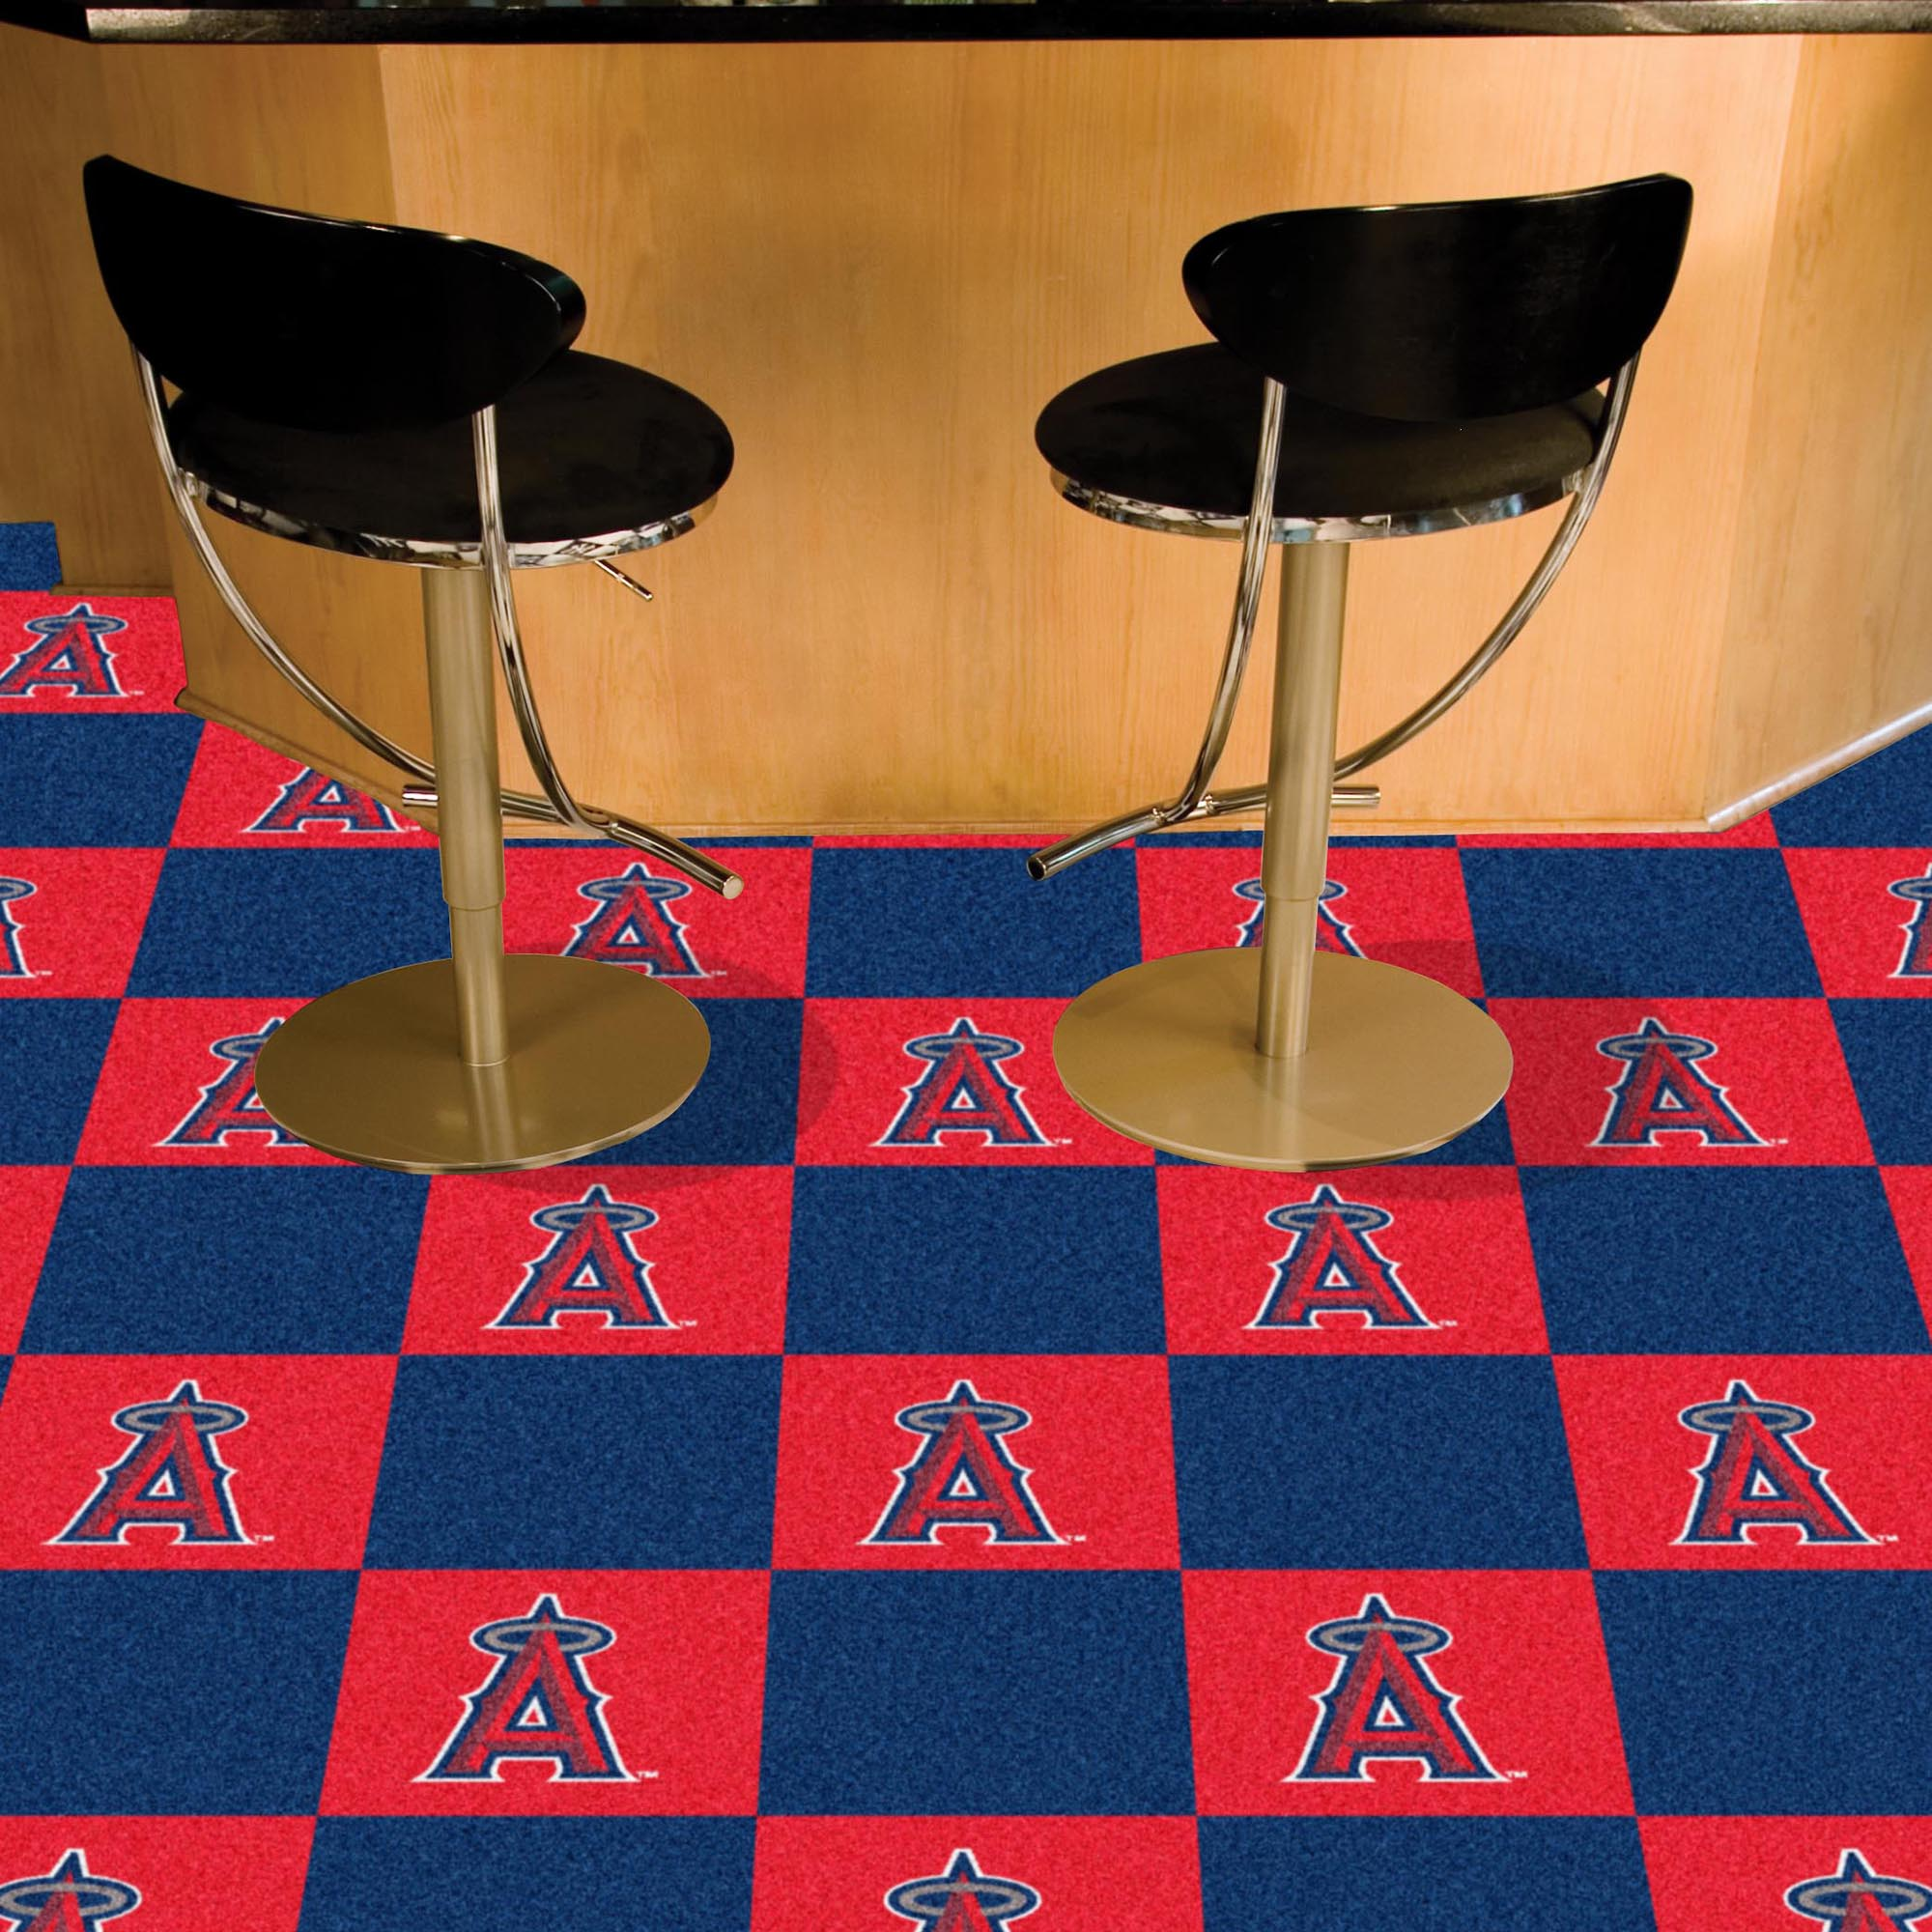 Los Angeles Angels Carpet Tiles 18x18 in.